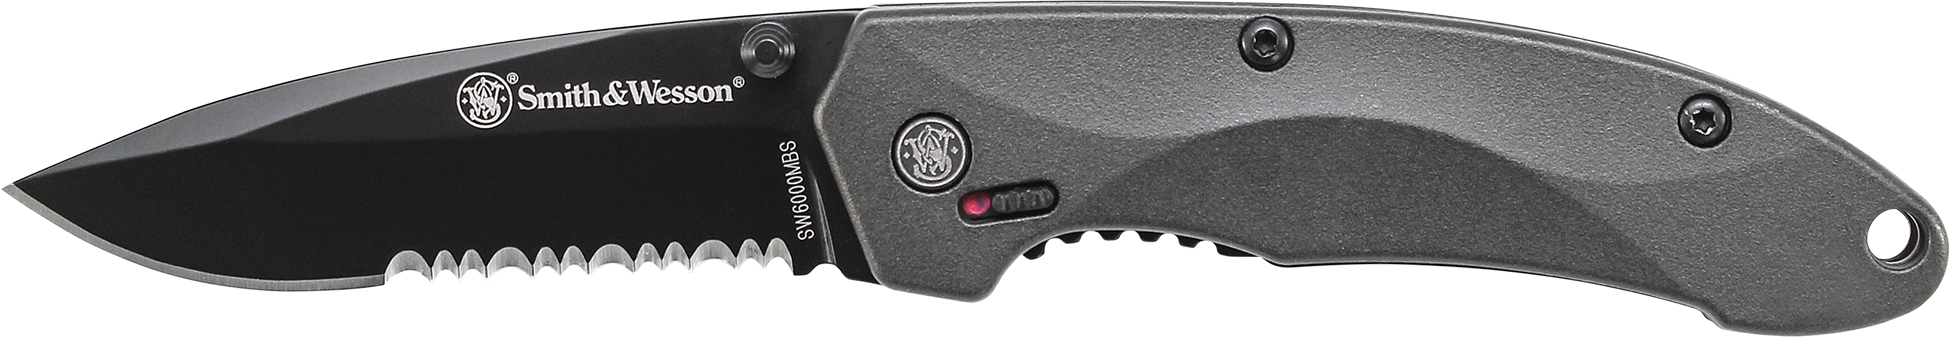 SW6000MBS - Smith & Wesson M.A.G.I.C. Mini Assist w/Liner Lock, Thumb Studs, Finger Actuator, 40% Ser 4034 Stainless Steel